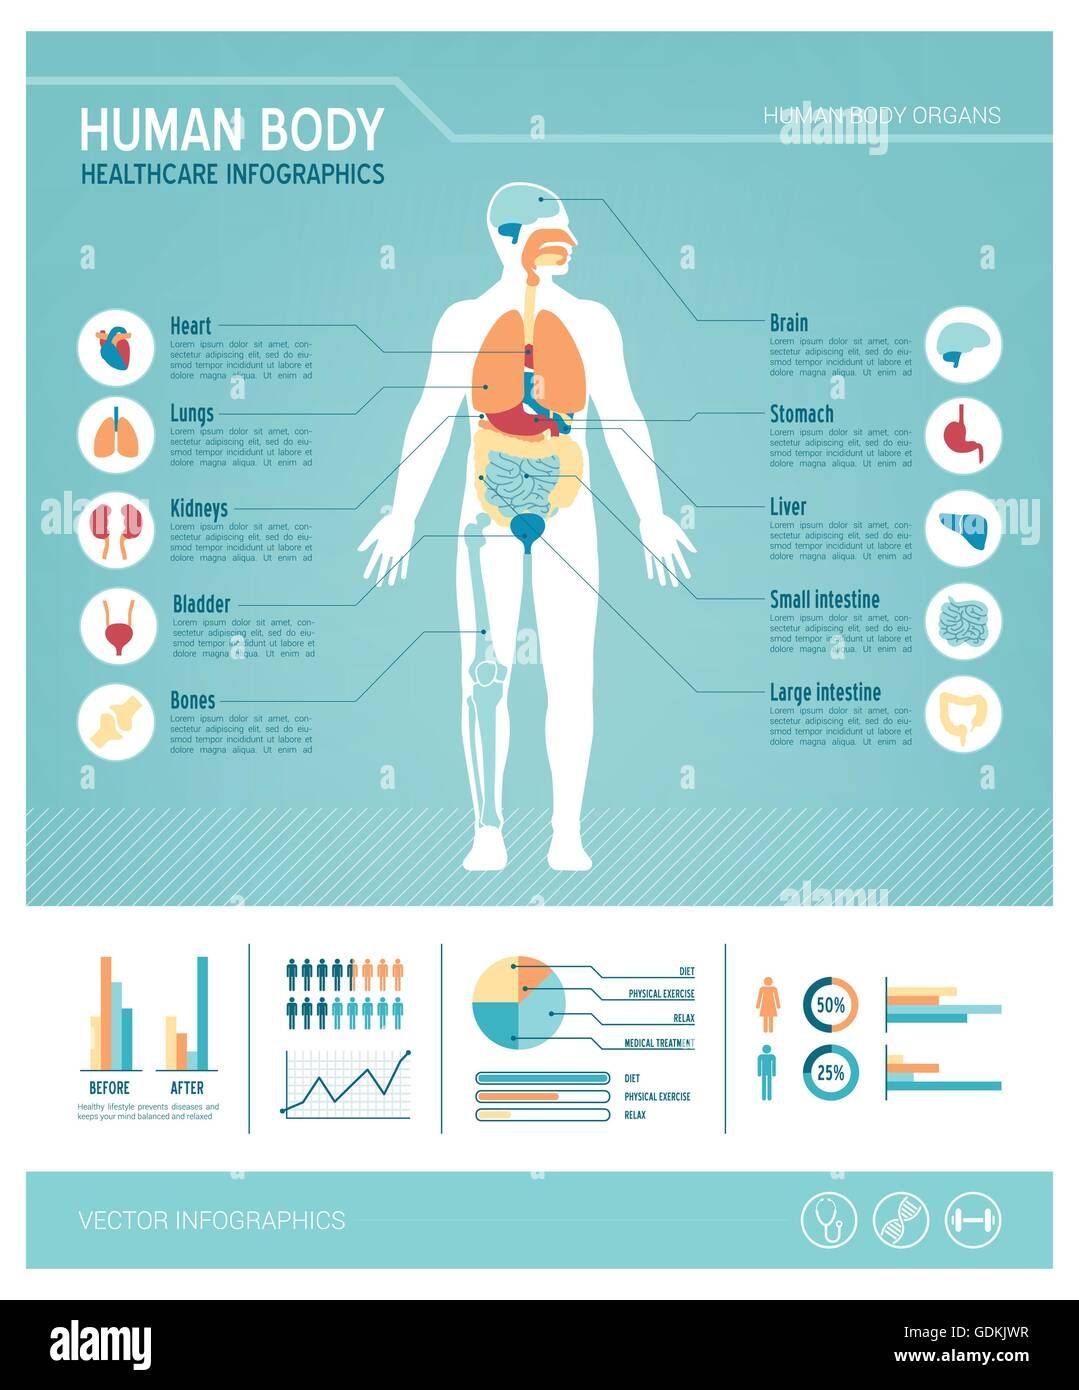 Human body health care infographics, with medical icons, organs, charts, diagarms and copy space Stock Vector